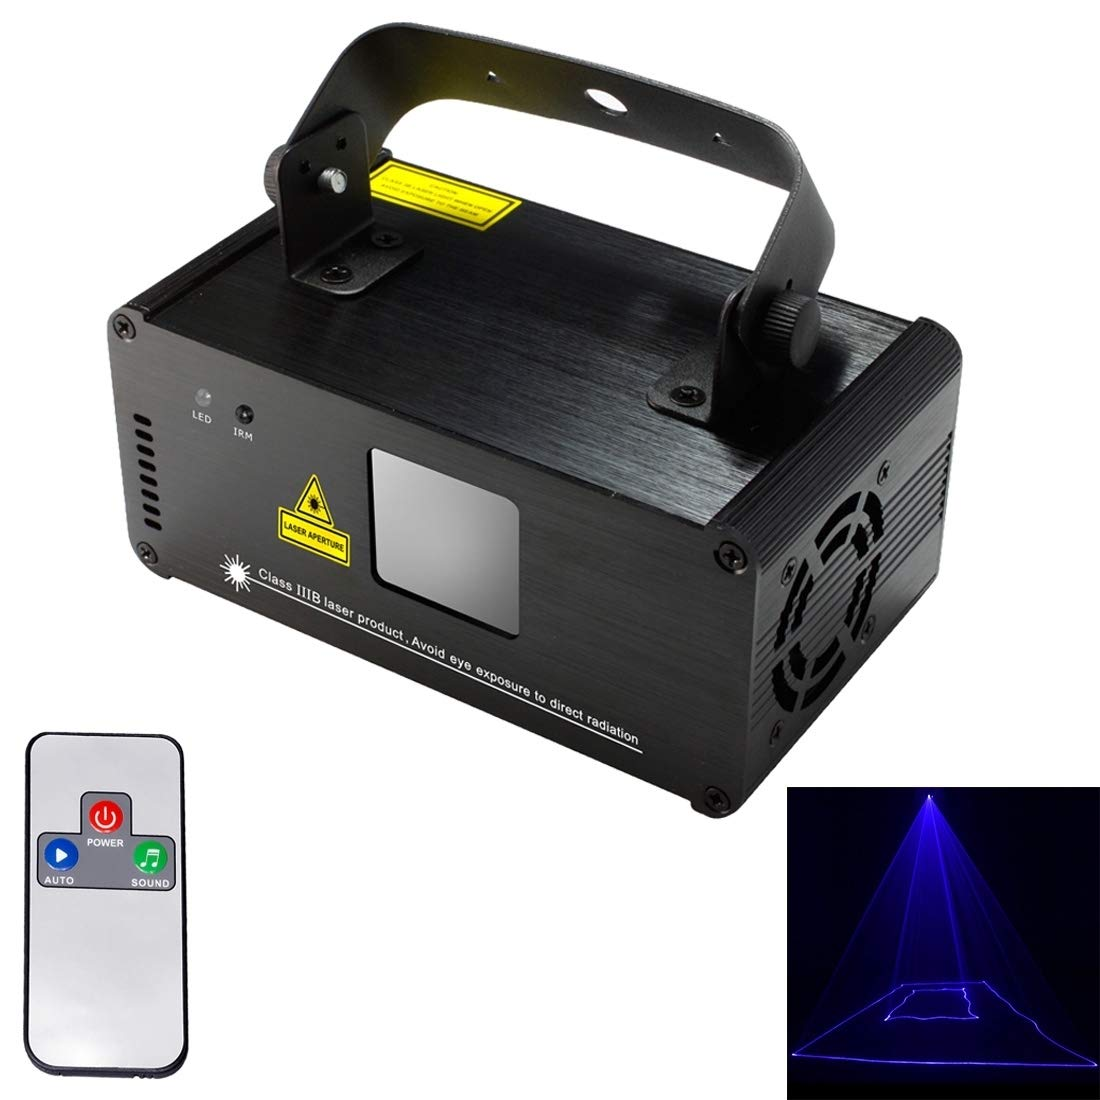 stage lighting DM-B500 18W LED Single Beam Projector with Remote Controller, Auto Run/Sound Control Modes, AC 100-240V by stage lighting (Image #1)